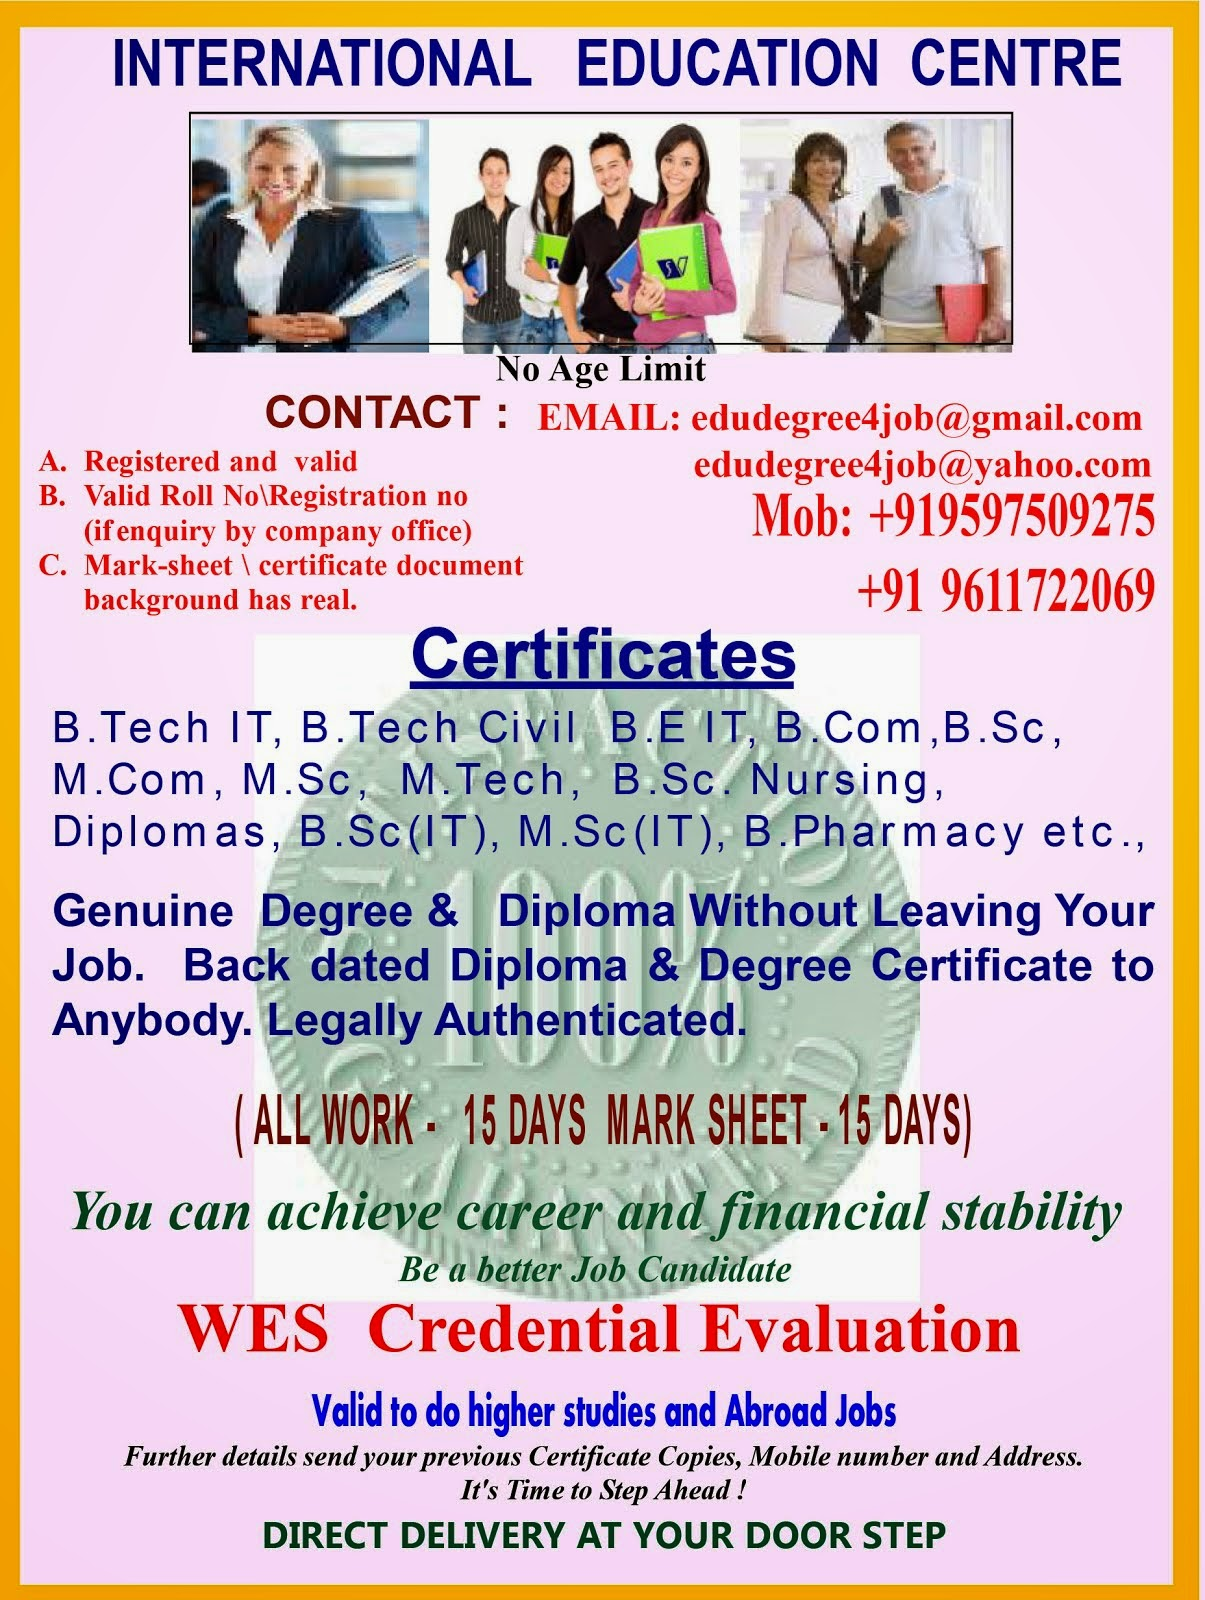 Genuine Degree Diploma Without Leaving Your Job Ugcaicte Approved